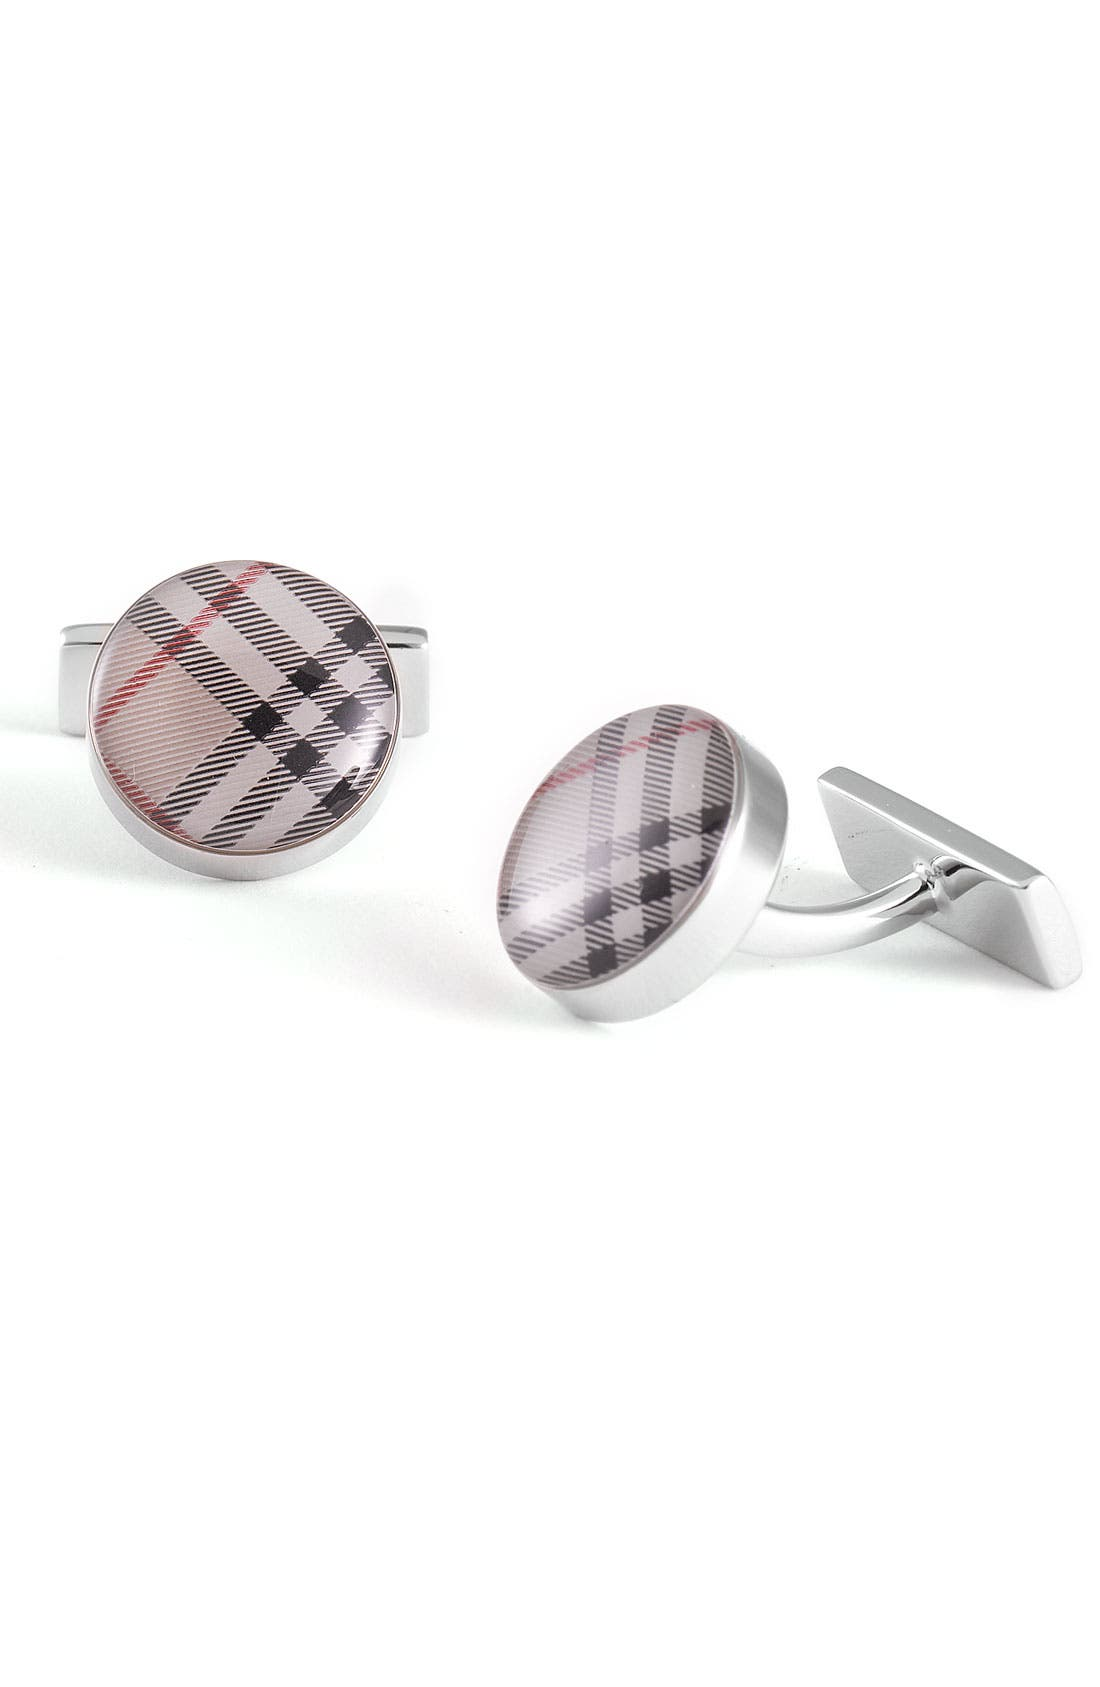 Main Image - Burberry Check Enamel Cuff Links